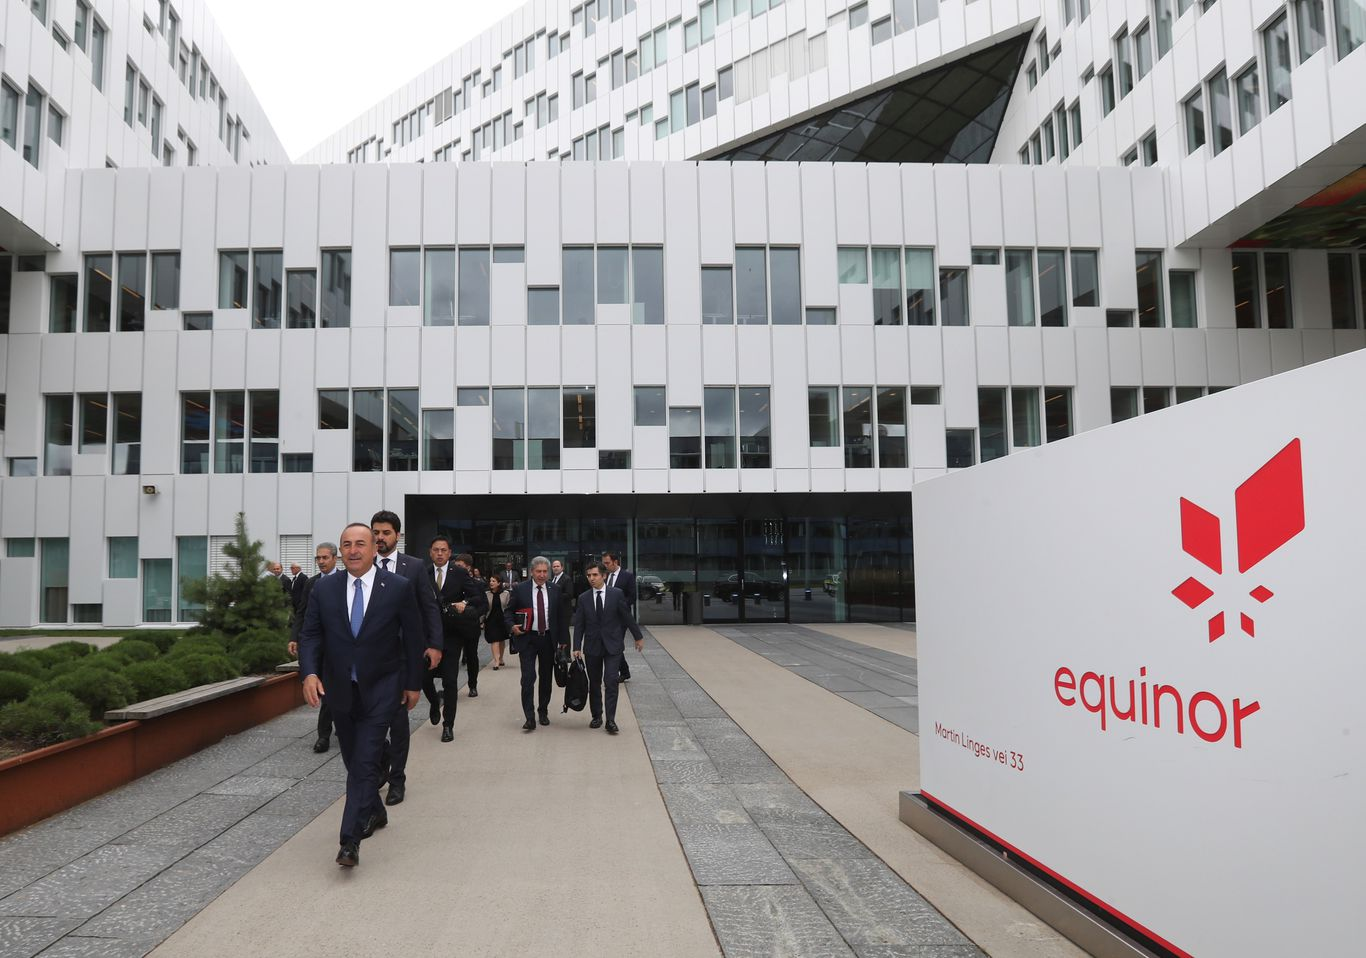 Oil giant Equinor names new CEO as it vows faster green shift